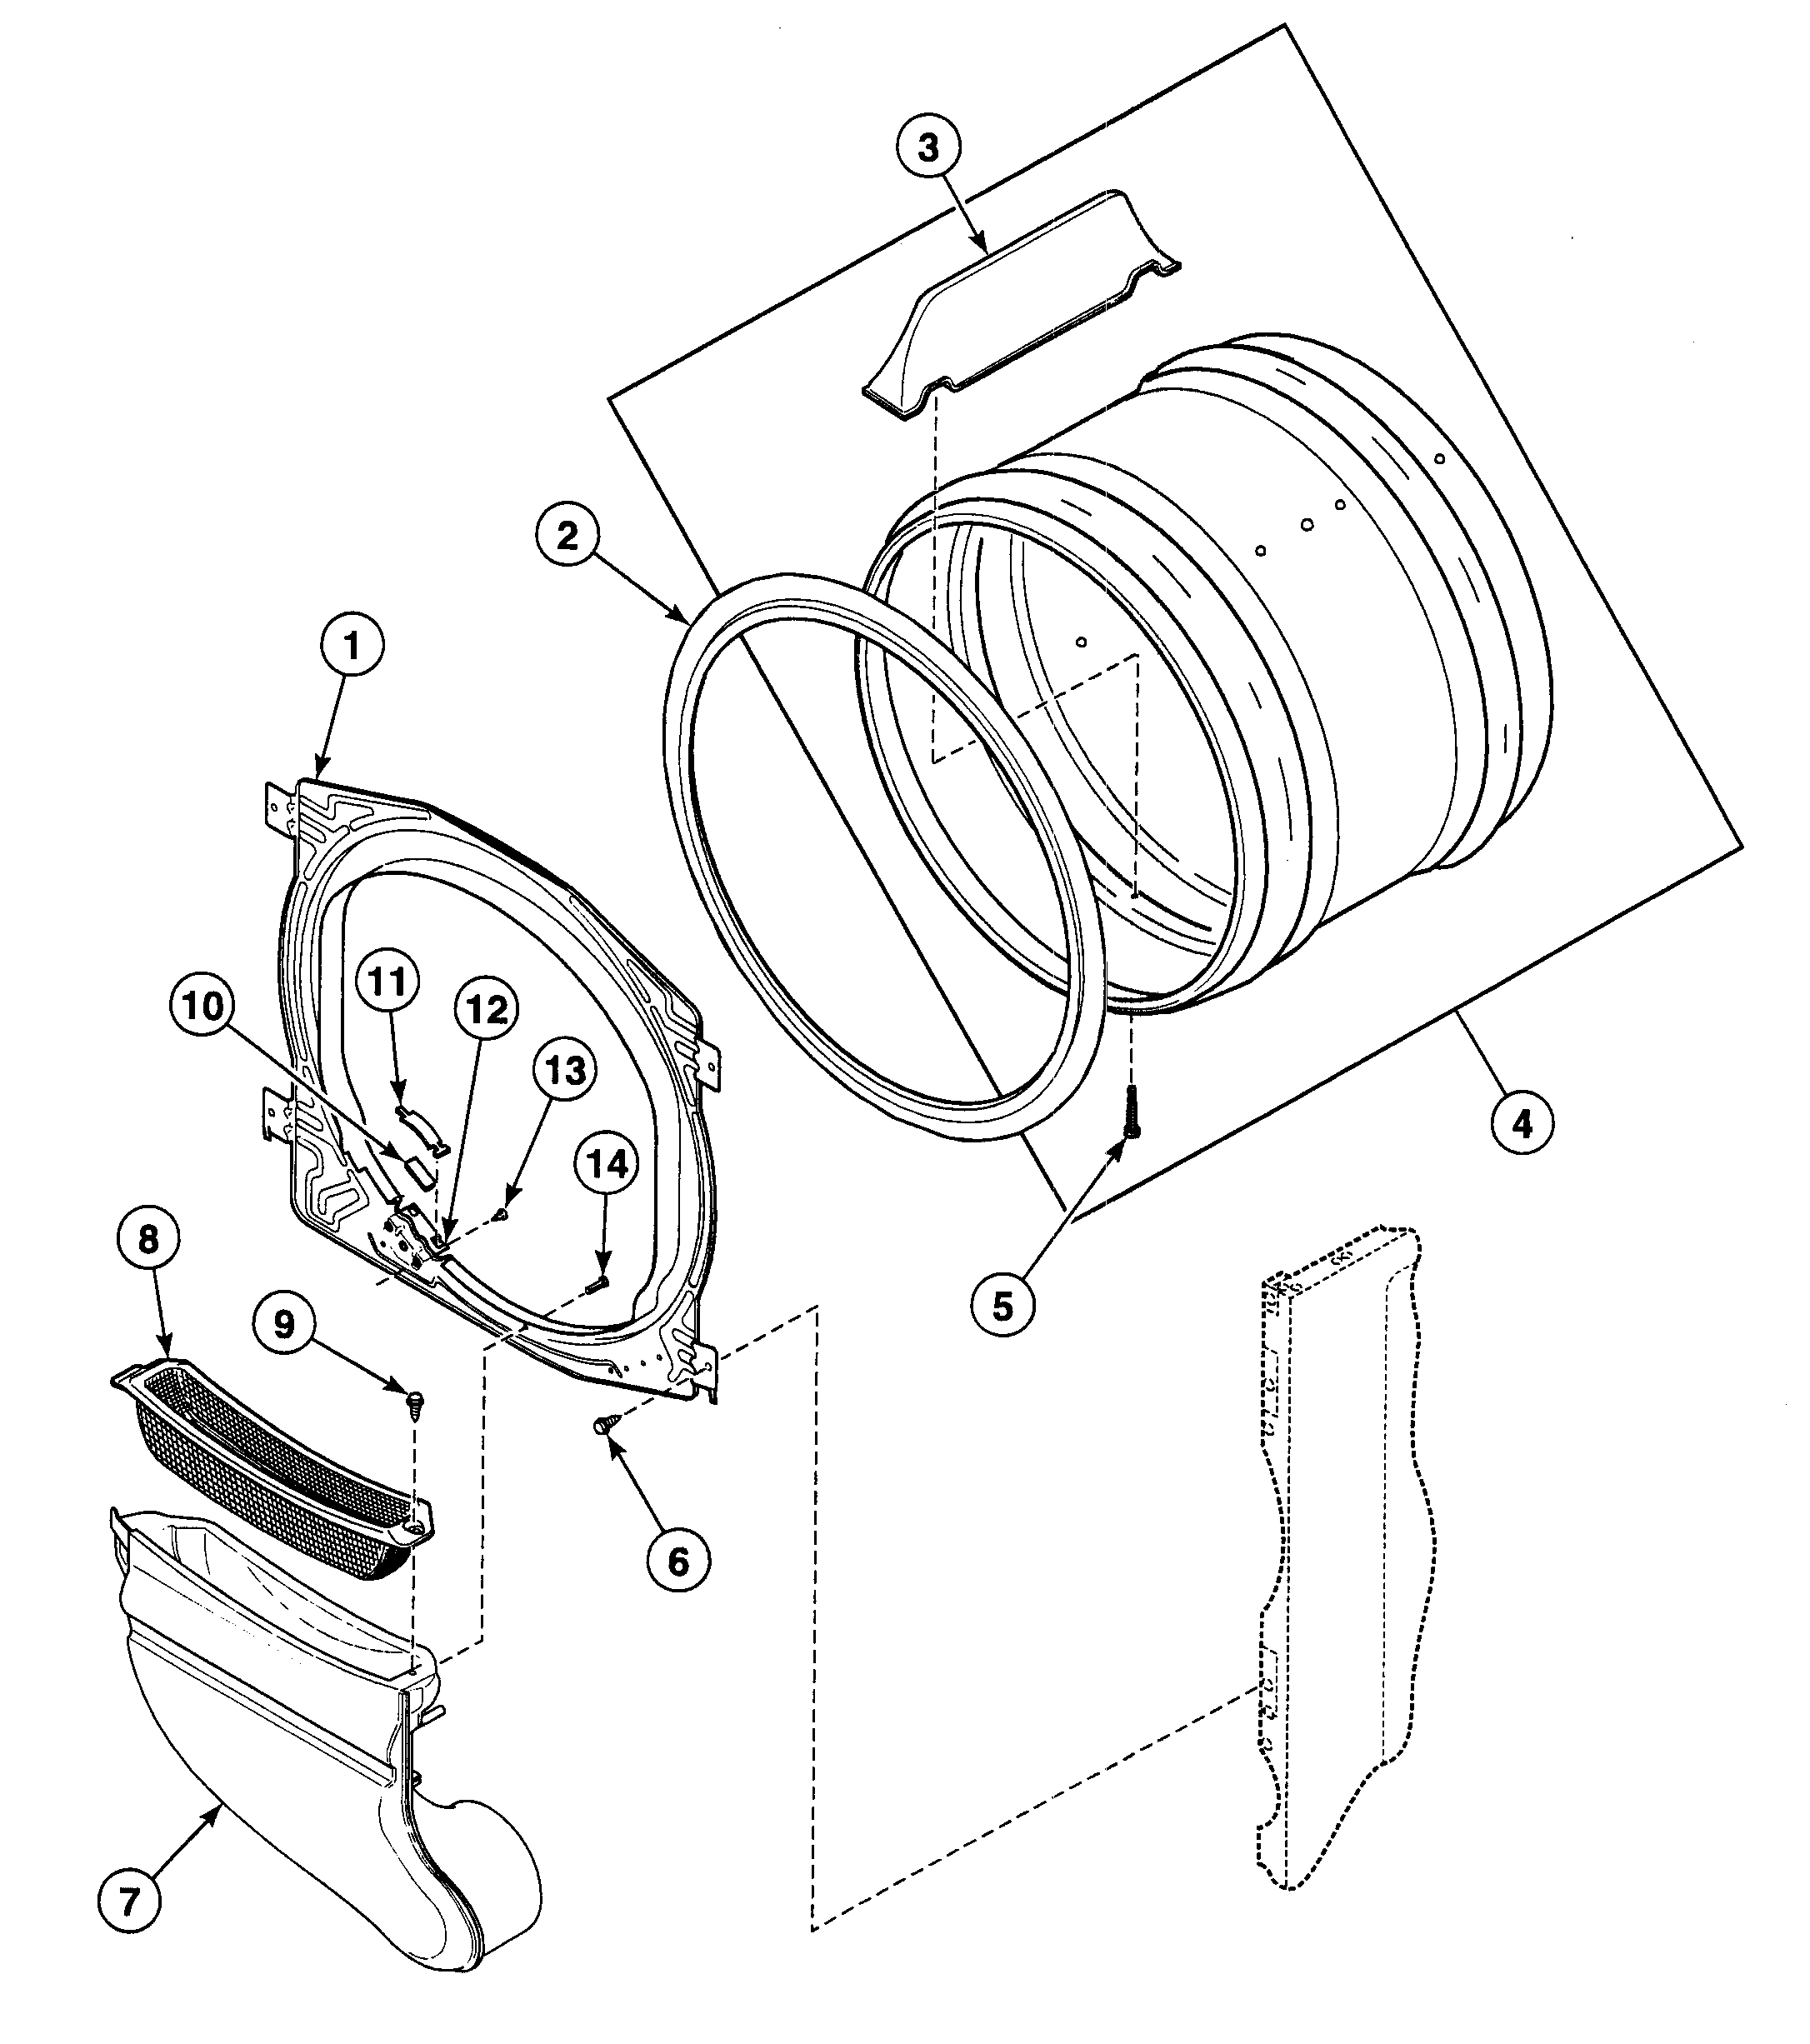 27 Speed Queen Dryer Parts Diagram